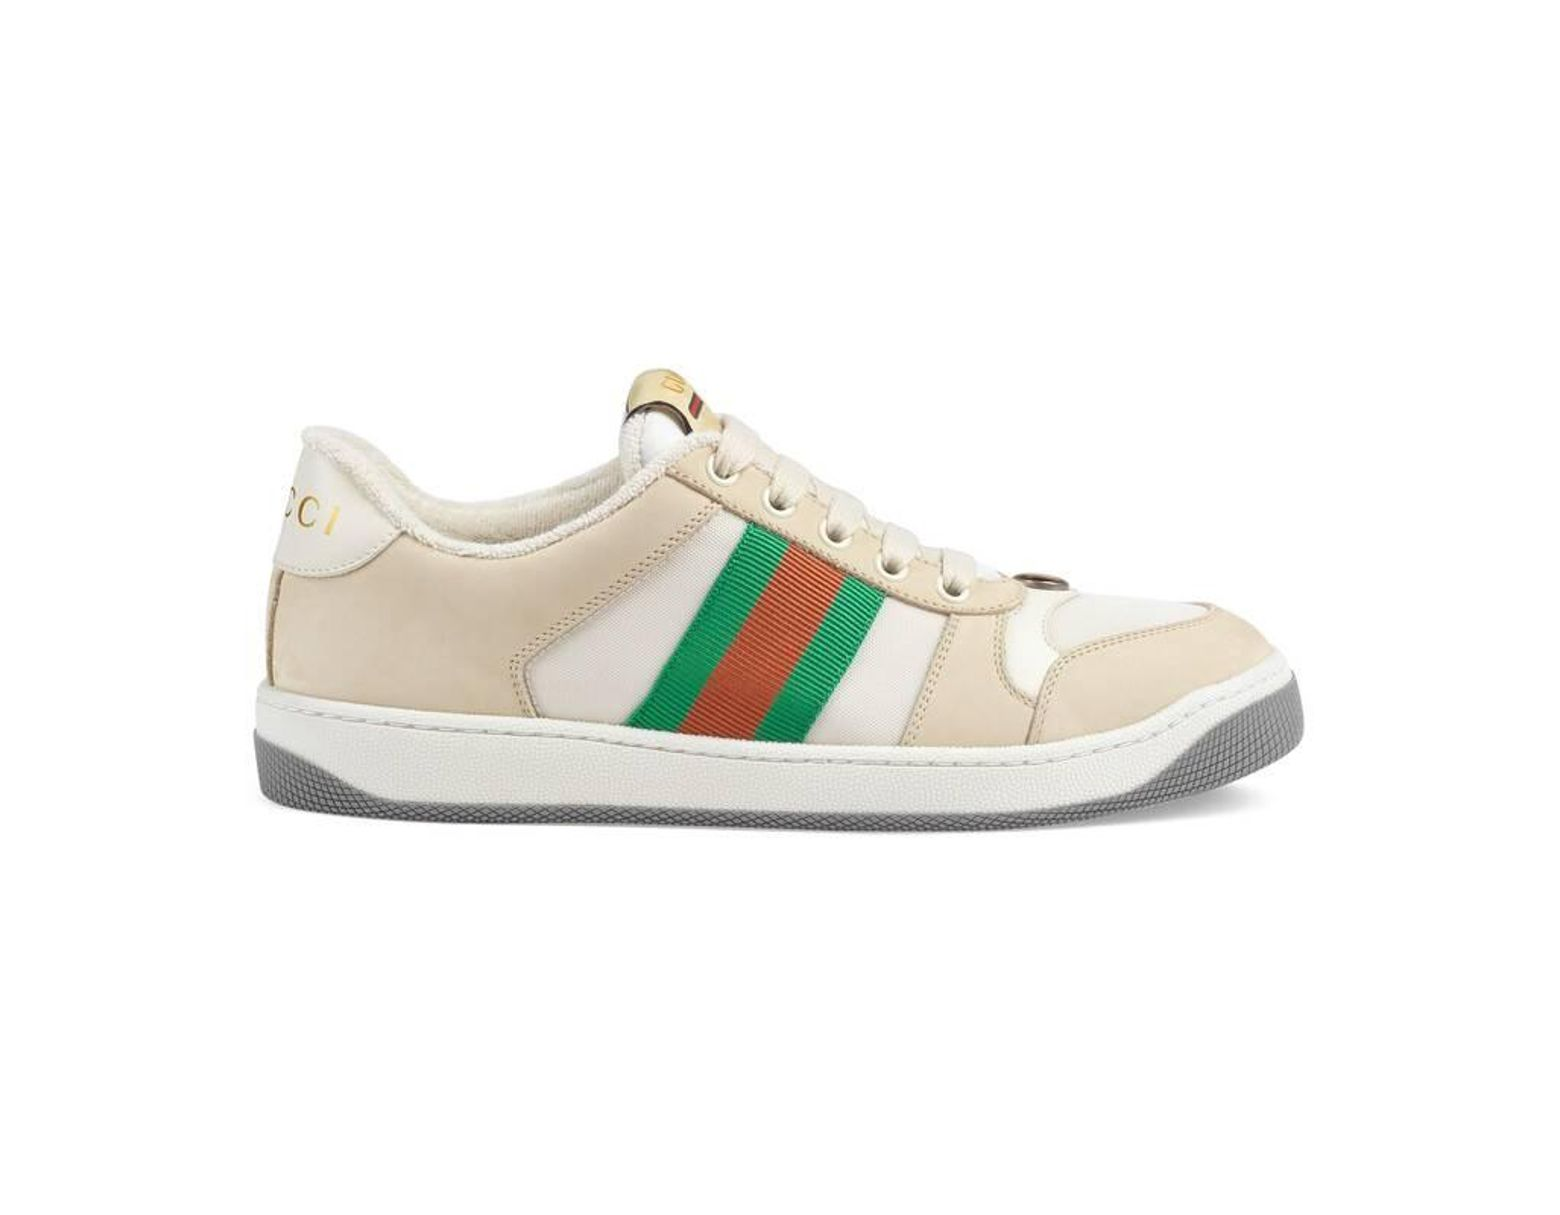 8fef4b2d99 White Women's Screener Leather Sneaker